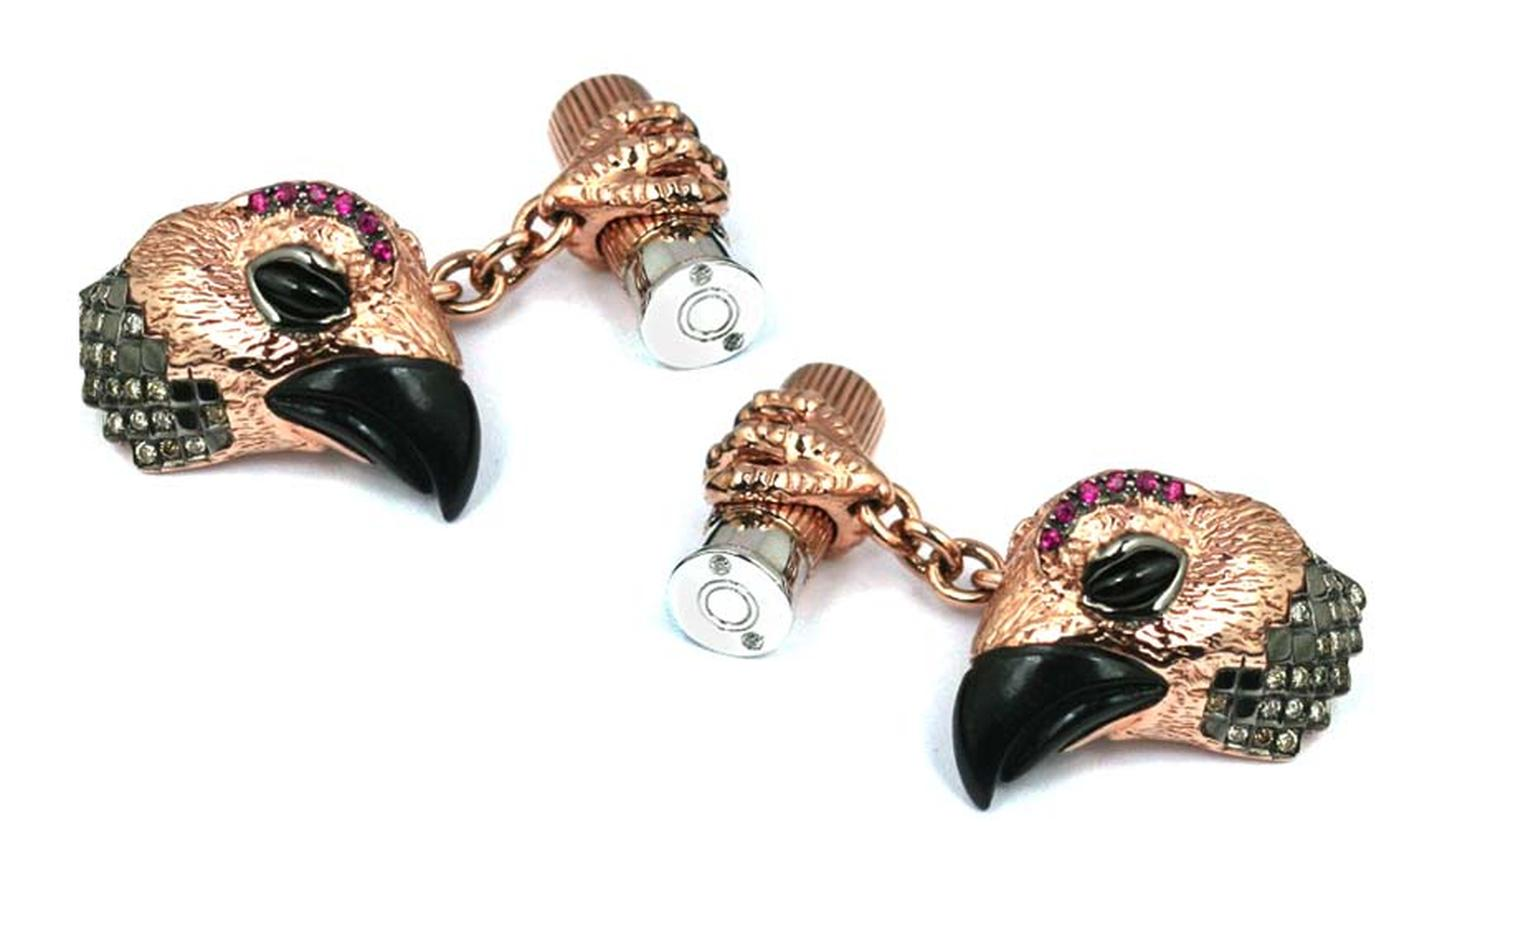 Tomasz Donocik Grouse cufflinks in rose gold with star diopside, black onyx, rubies and brown diamonds (£18,000)